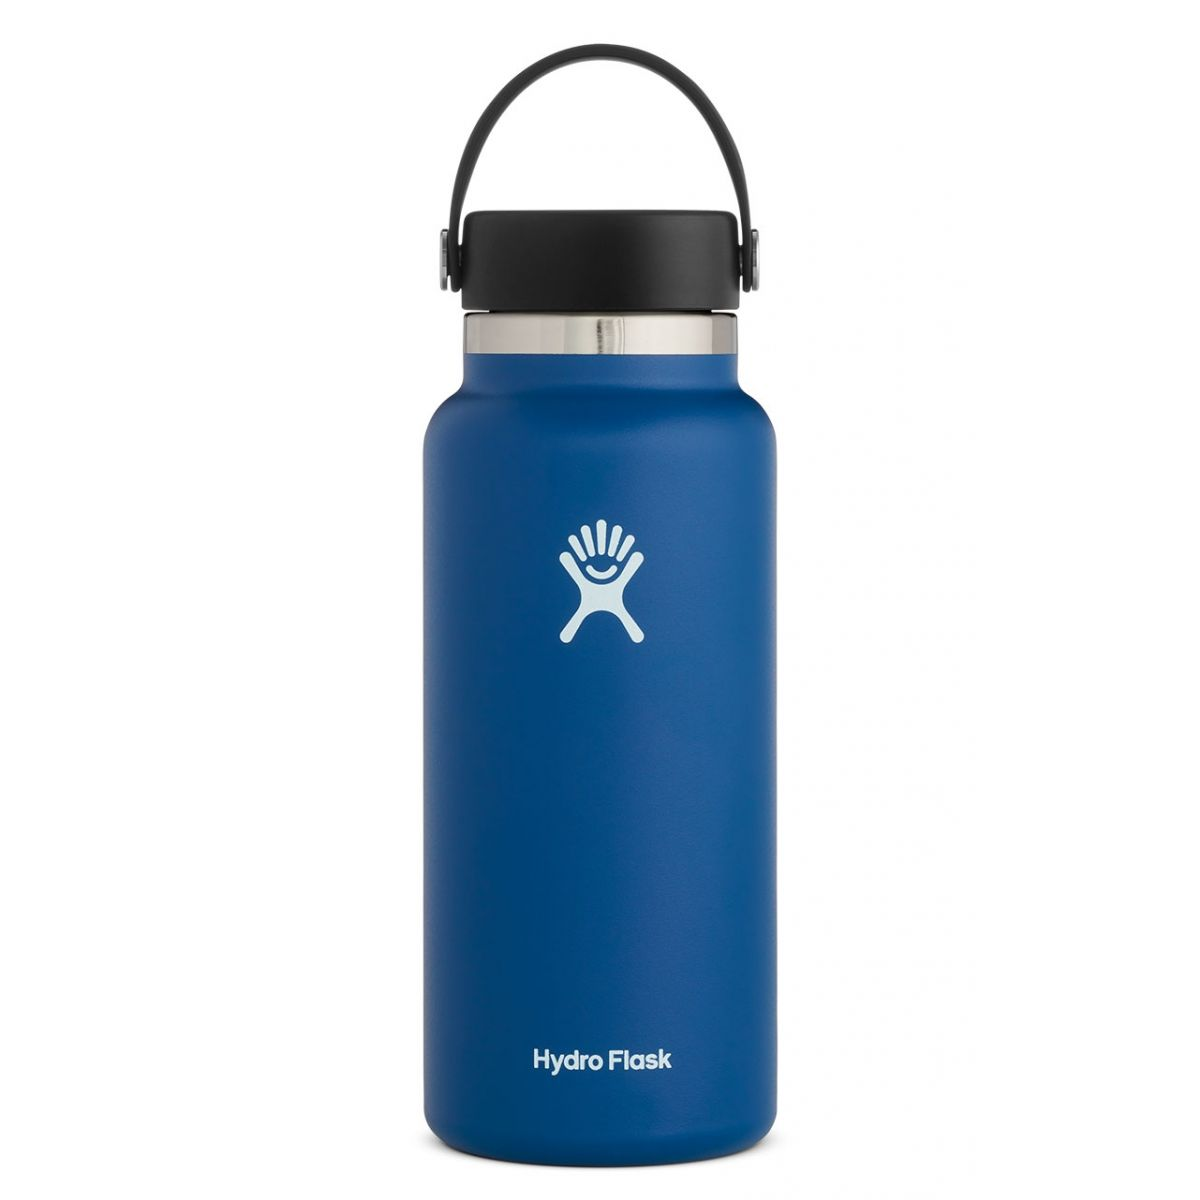 hydroflask 32 oz wide mouth bottle in cobalt